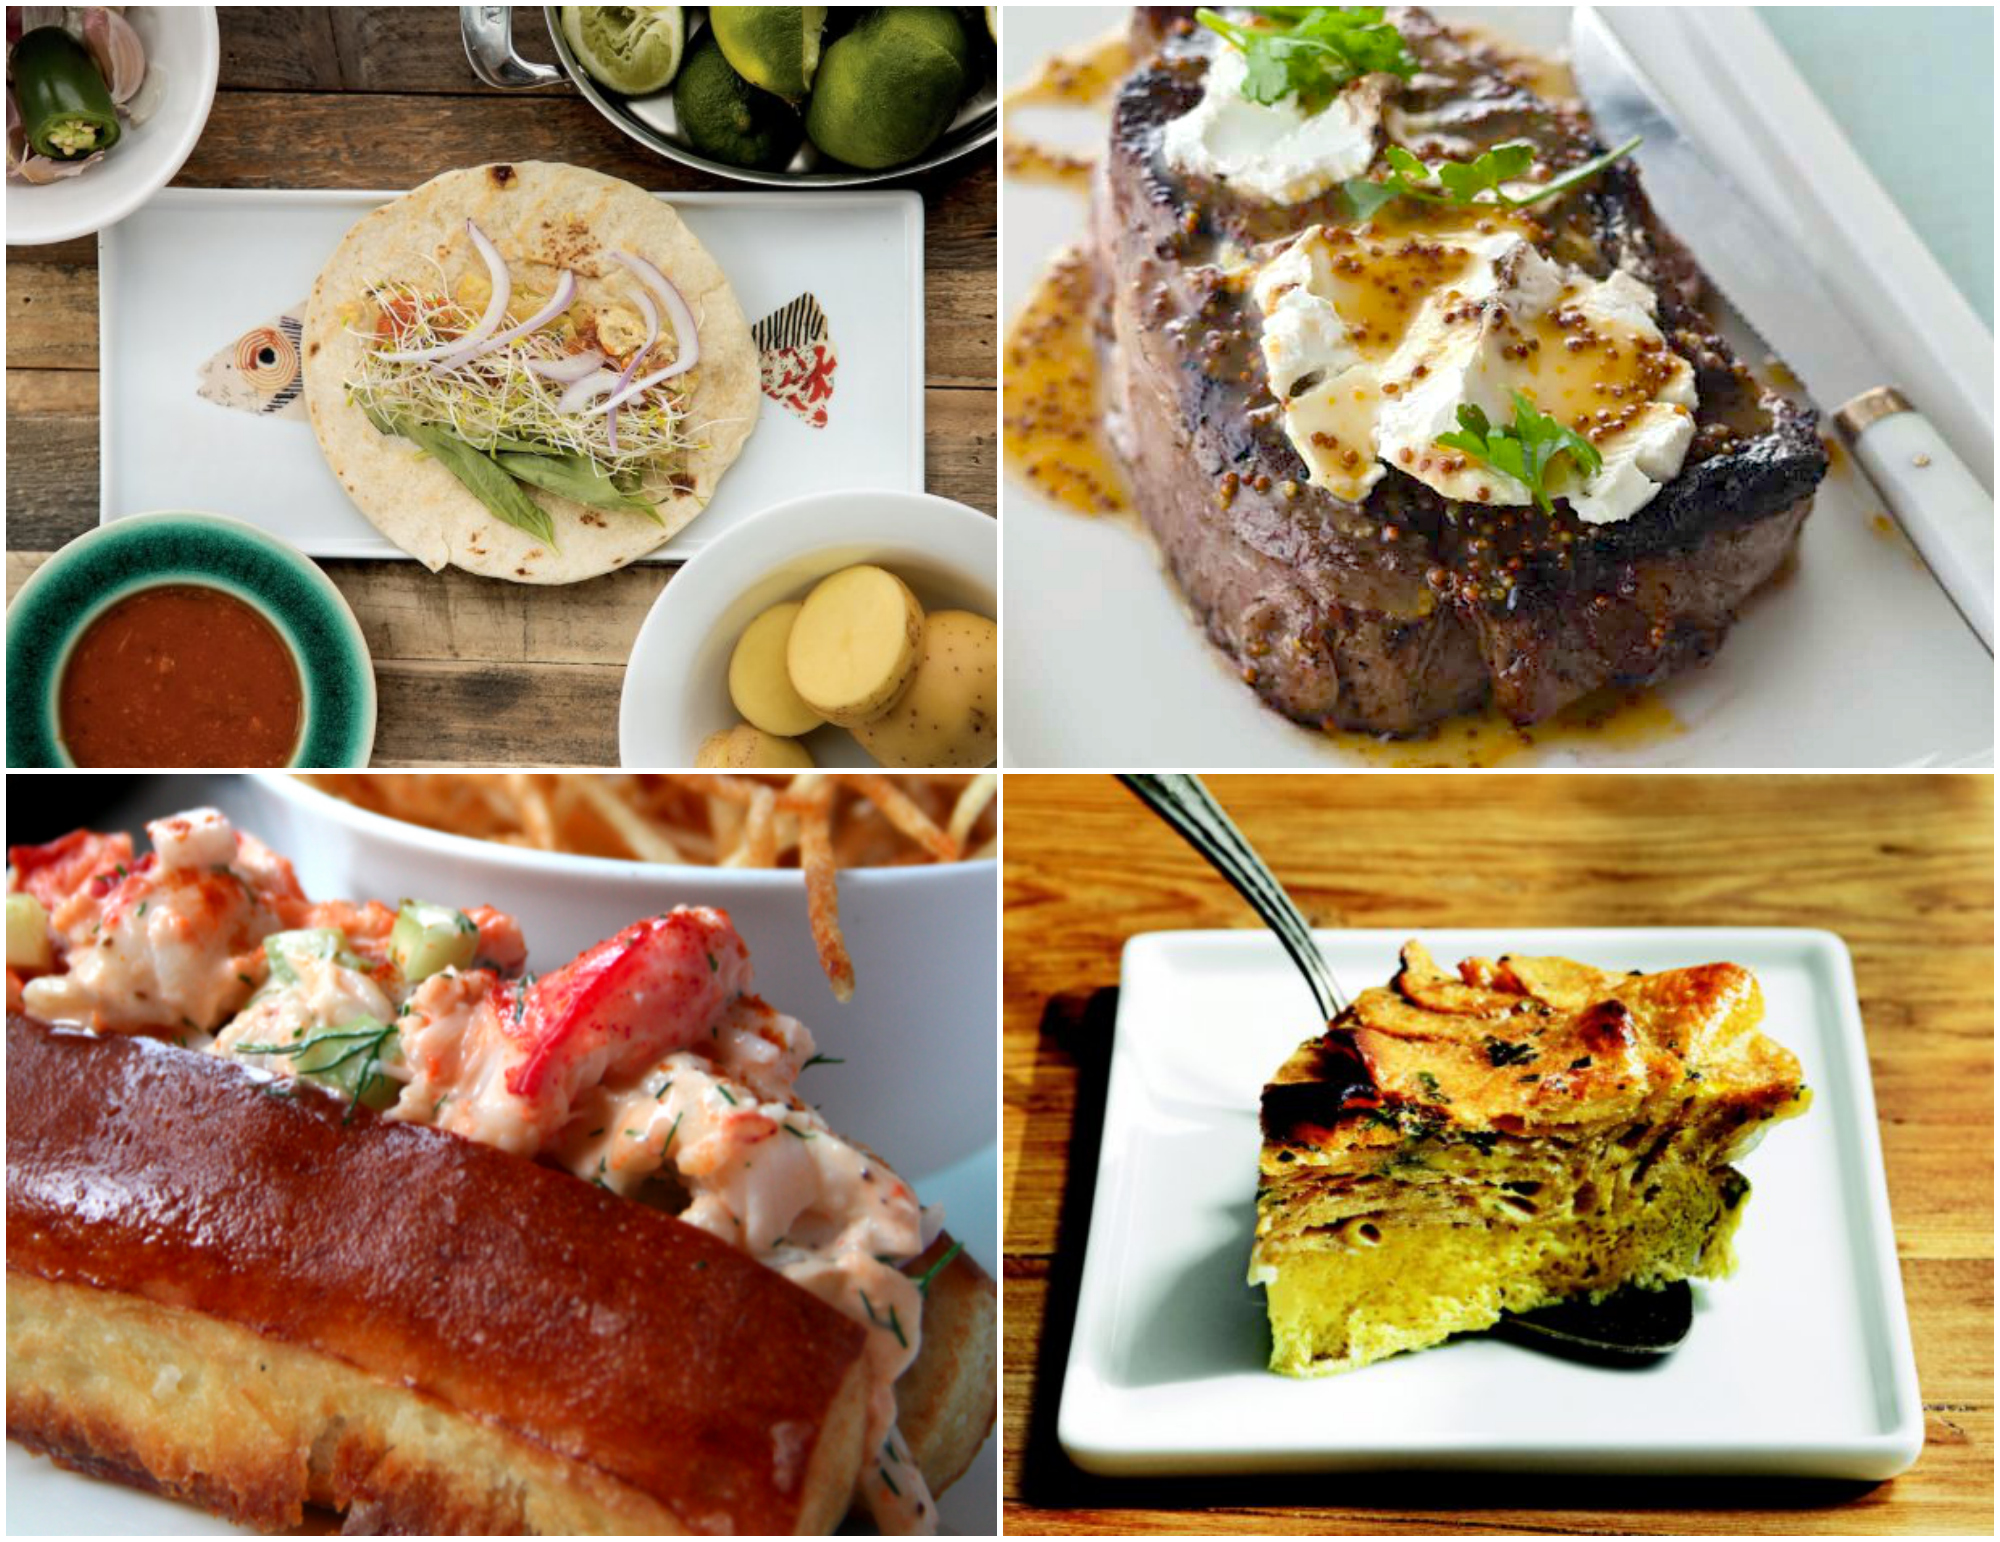 15 Celebrity Chef Recipes To Add To Your Repertoire - Food Republic